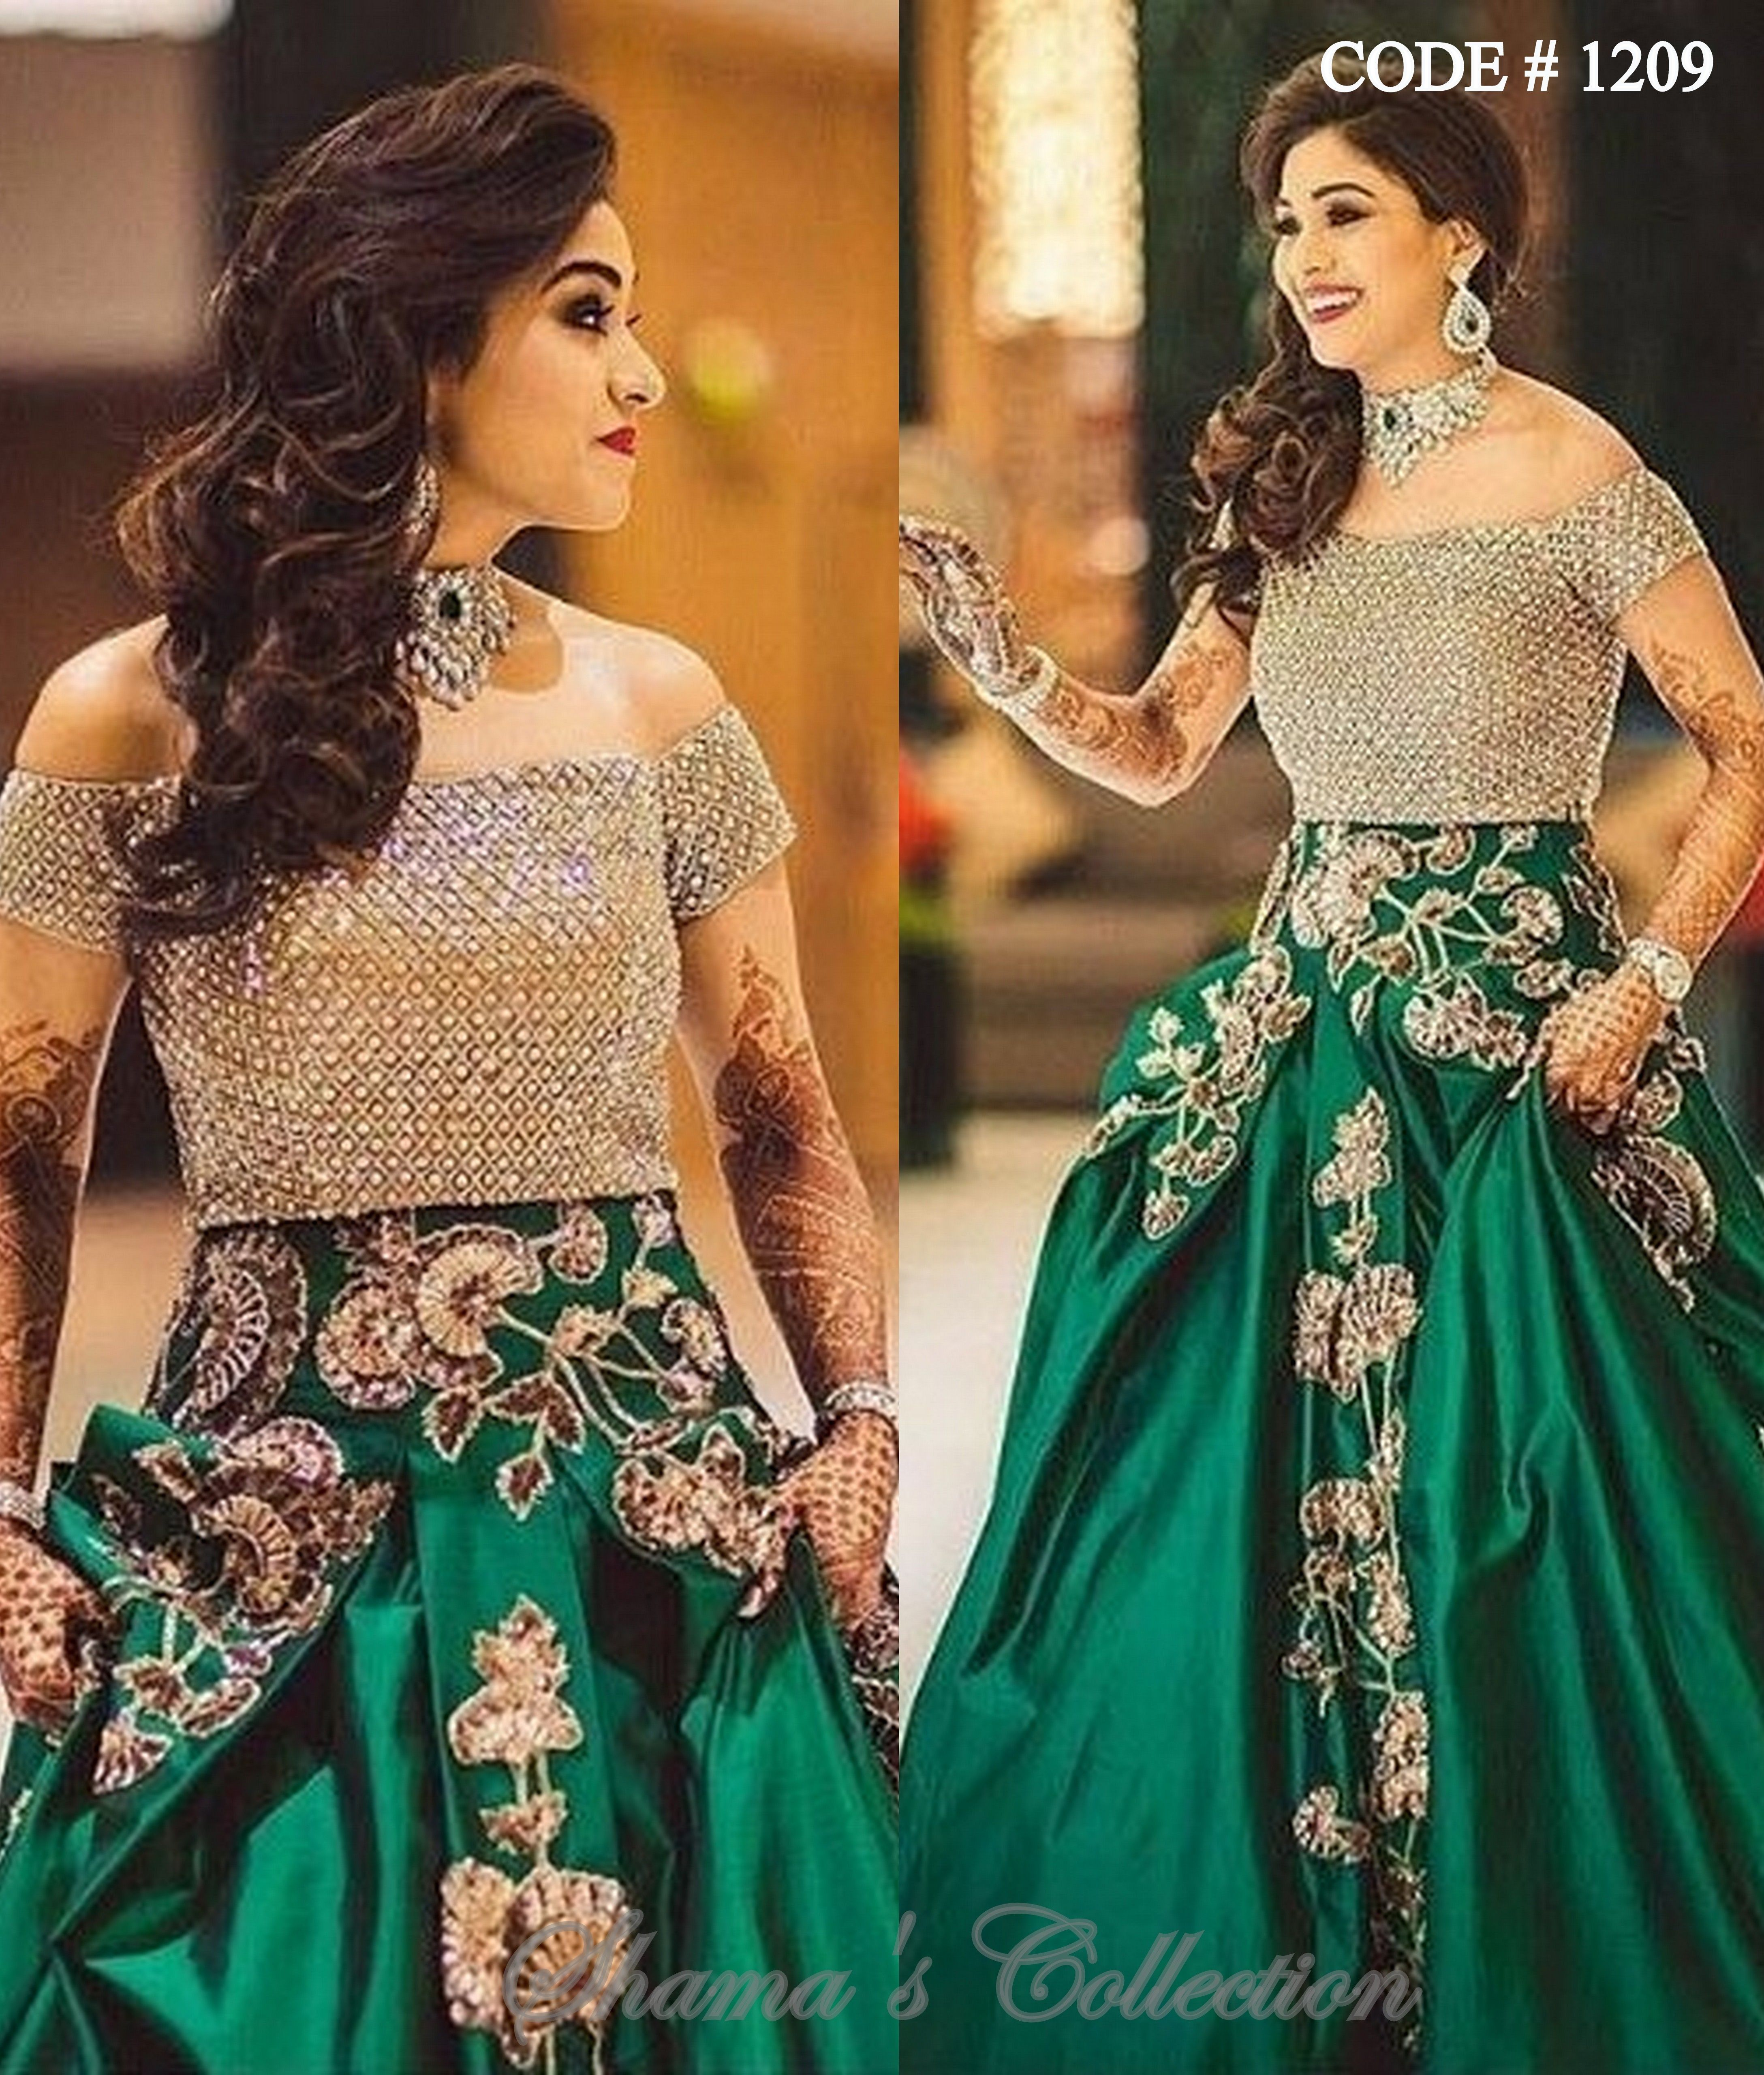 1209 Green Lengha With Golden Offshoulder Blouse Indian Wedding